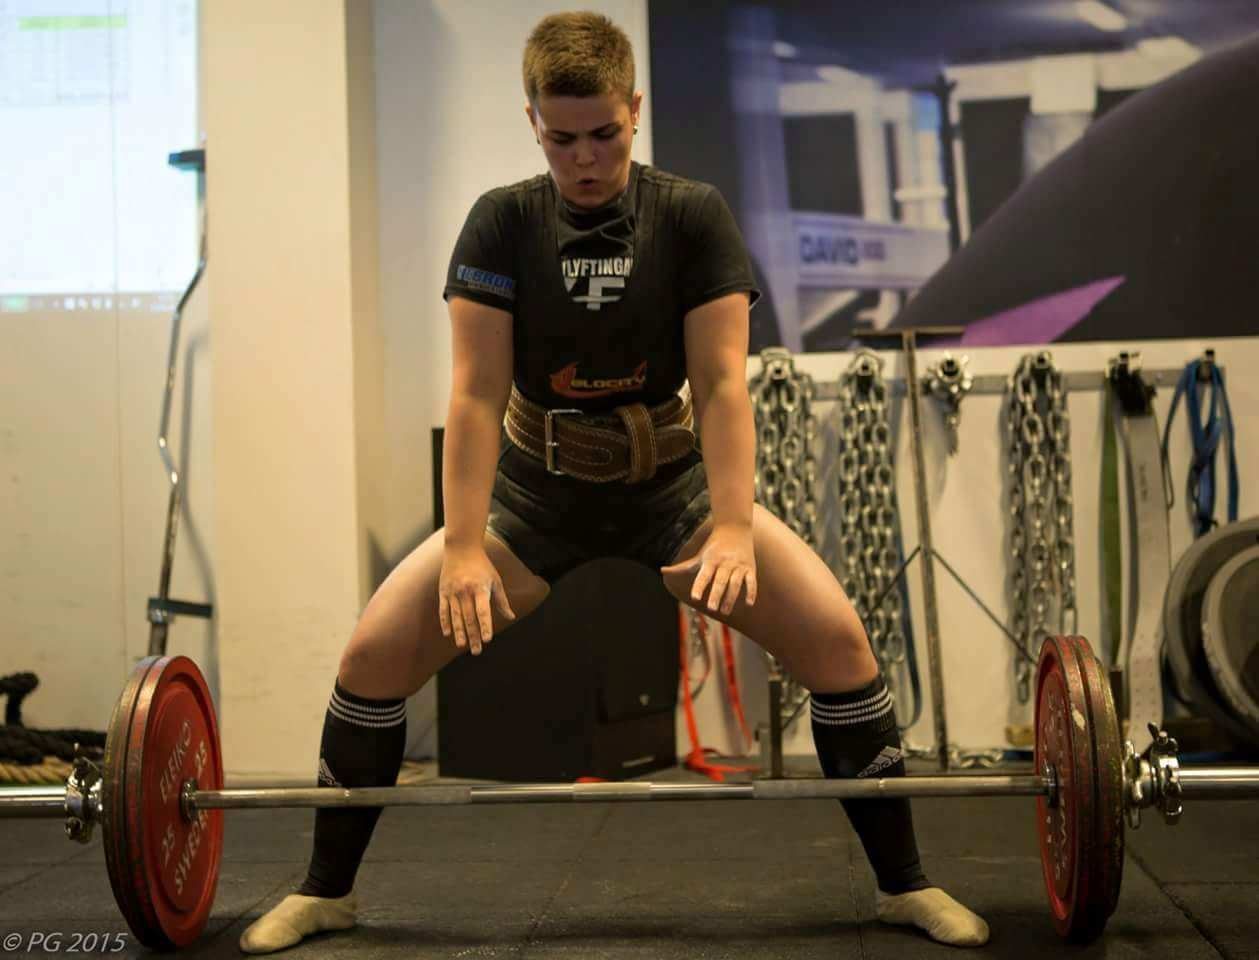 hulda waag deadlift